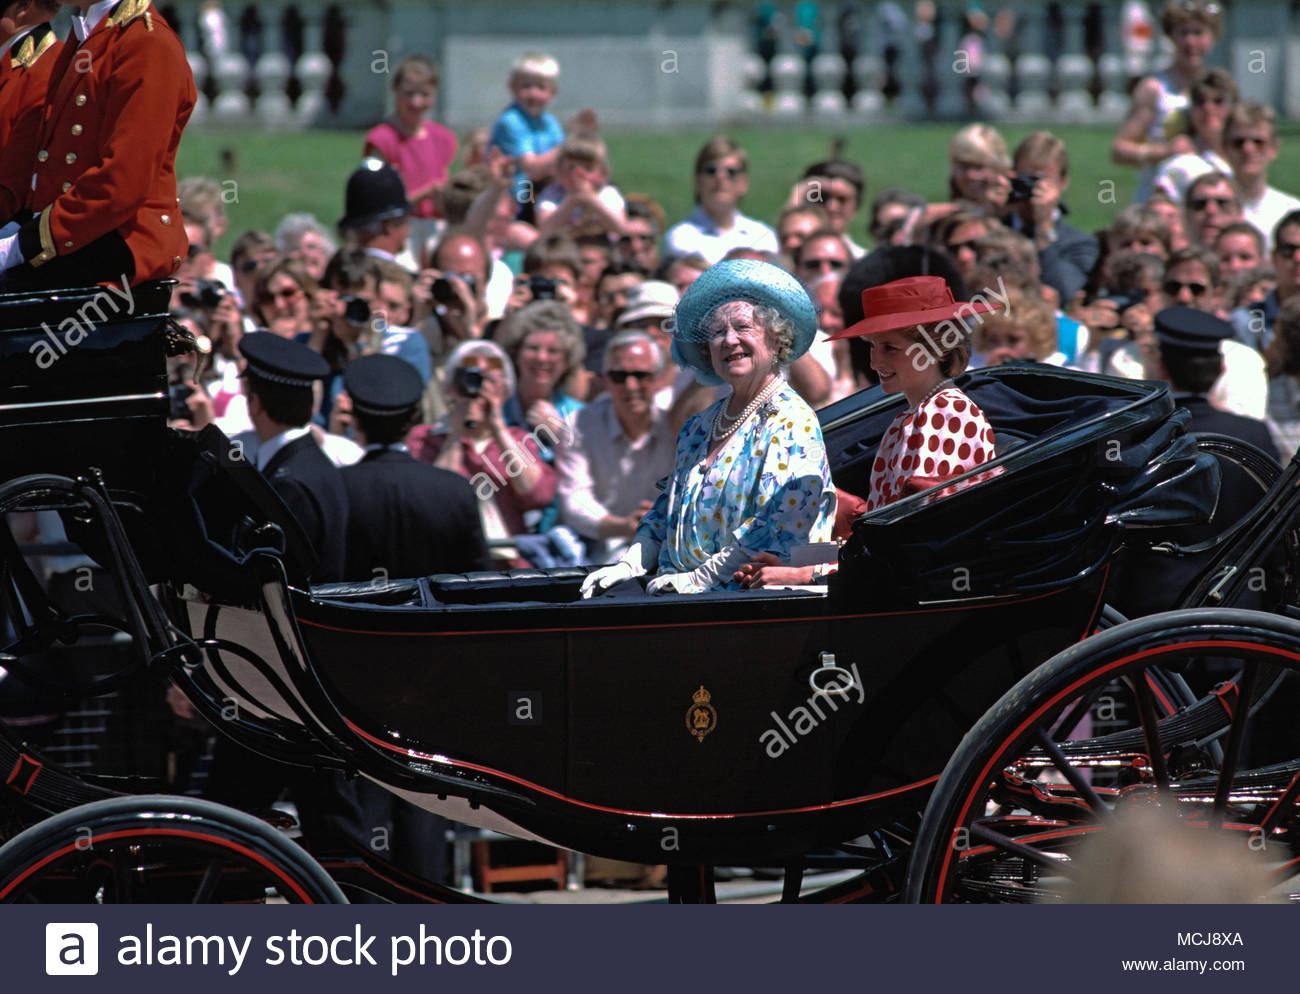 Princess Diana and the Queen Mother riding in open, horse-drawn carriage at Royal Ascot Racecourse in 1986. - Stock Image